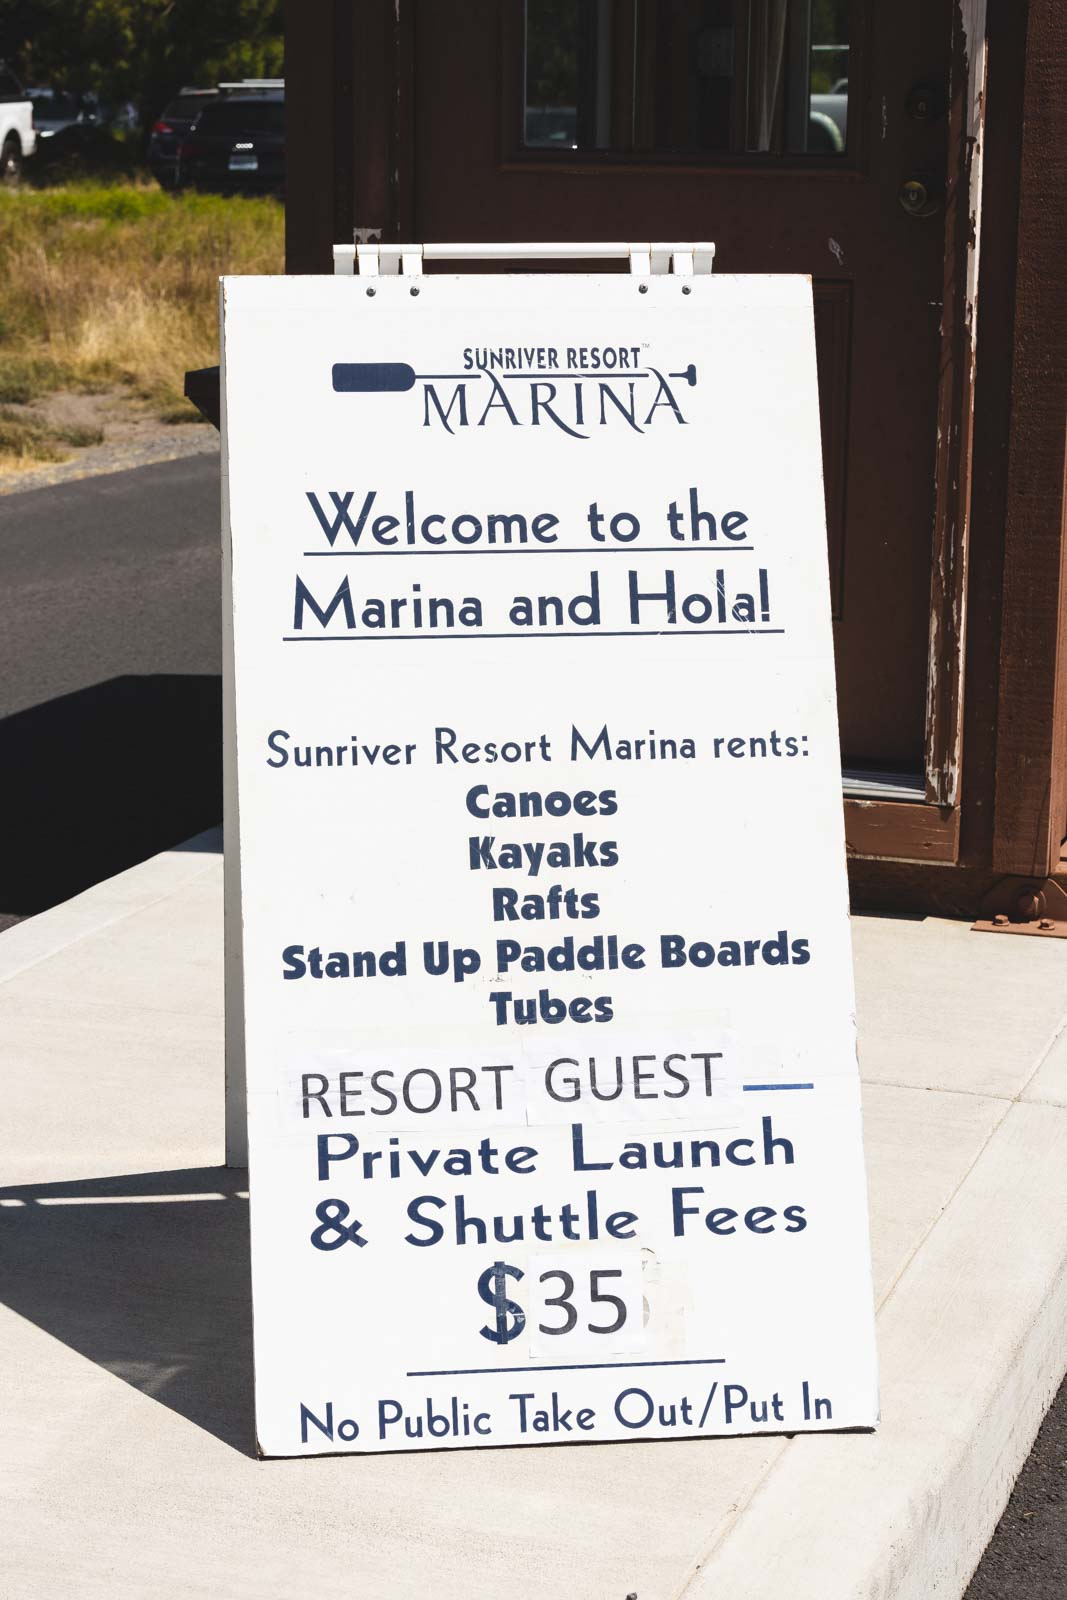 If you're looking for fun things to do in Sunriver, head to Sunriver Marina and get some outdoor equipment.